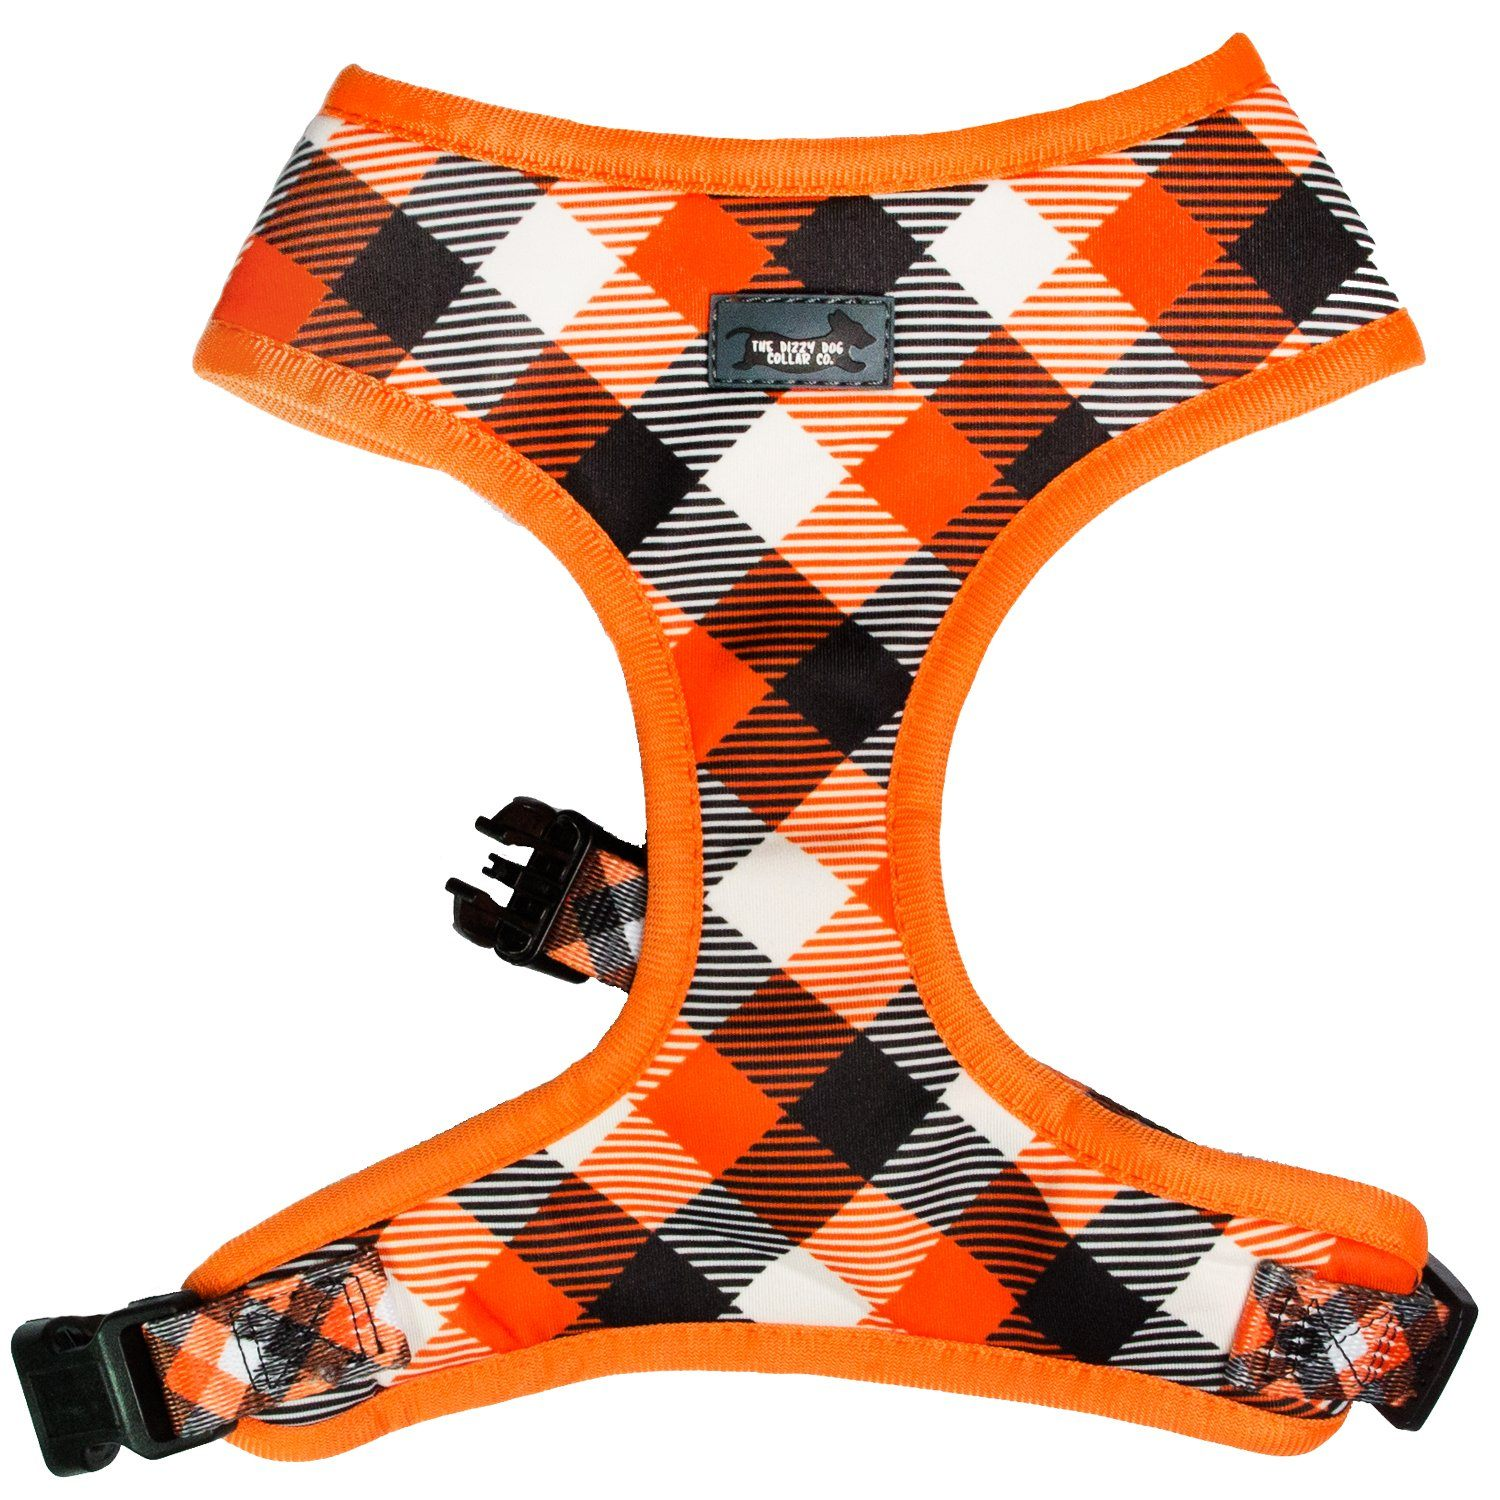 plaid dog harness, bright orange plaid dog harness perfect for the fall or all year round